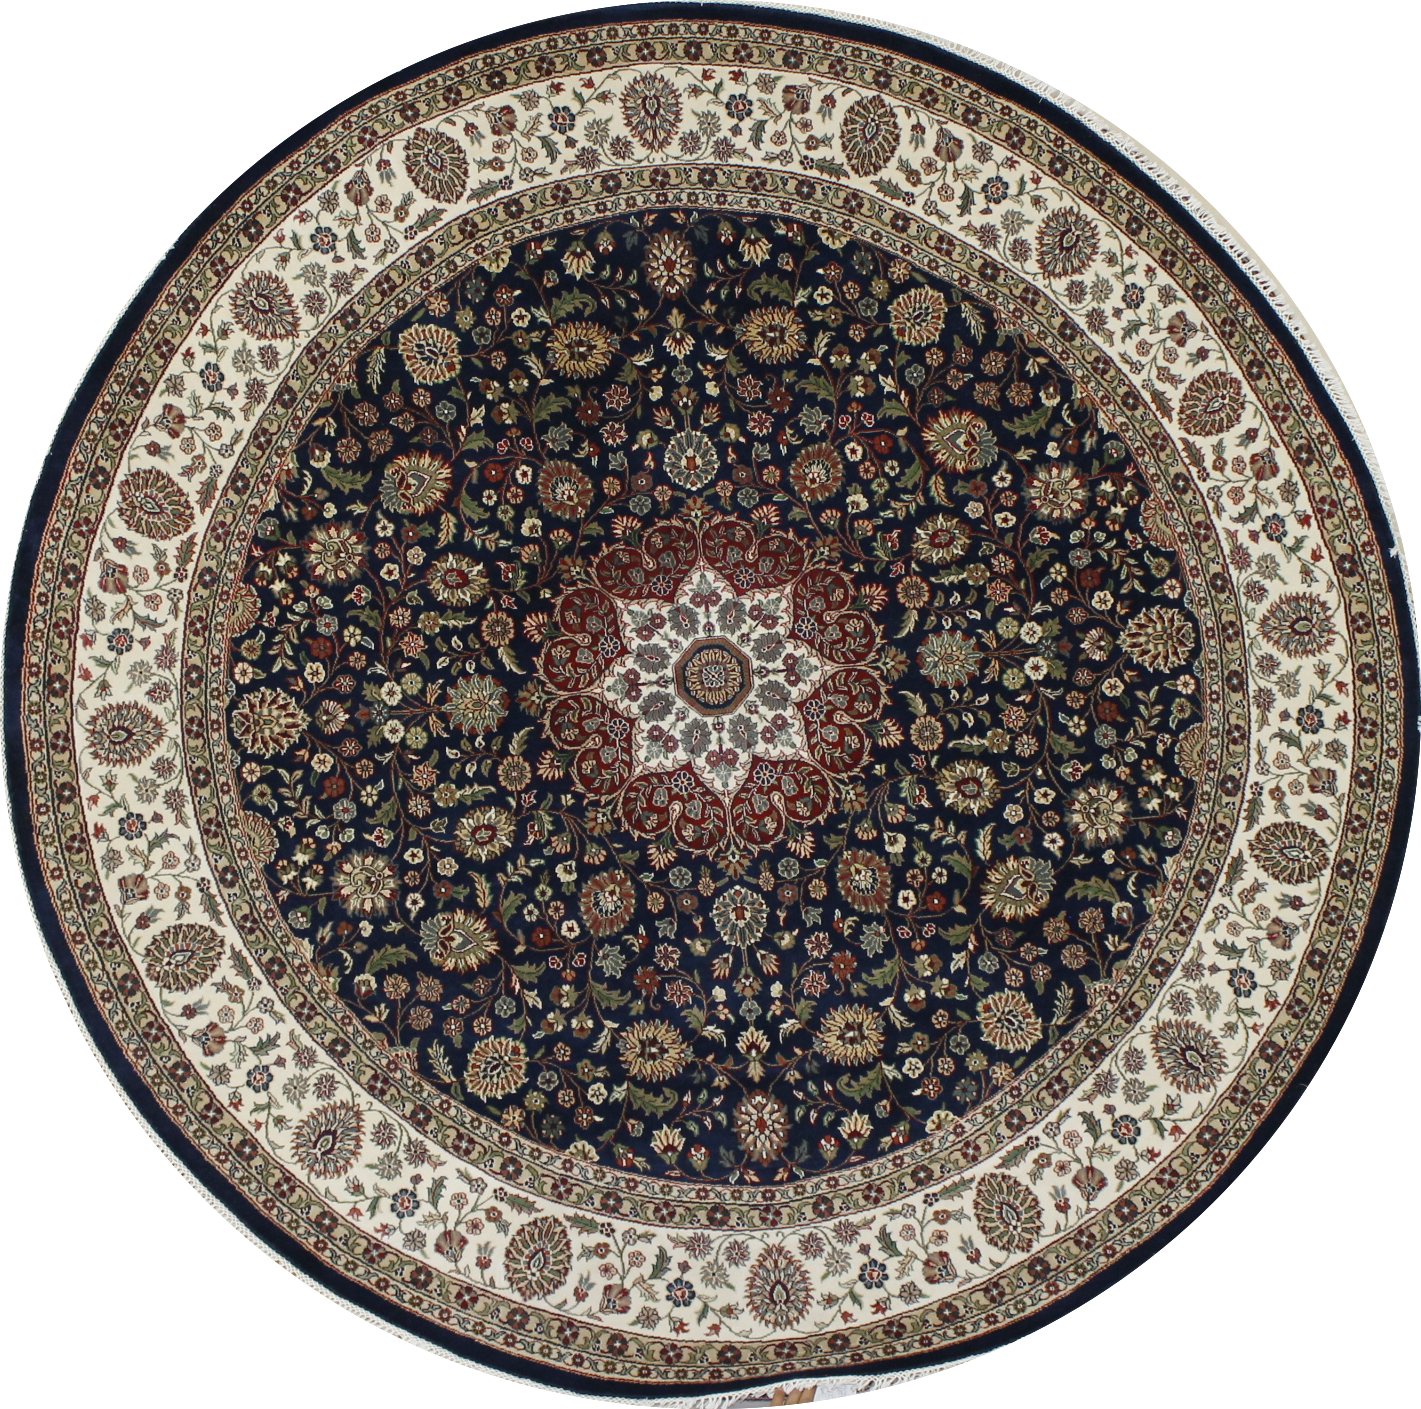 8 Round & Square Traditional Hand Knotted Wool Area Rug - MR022414